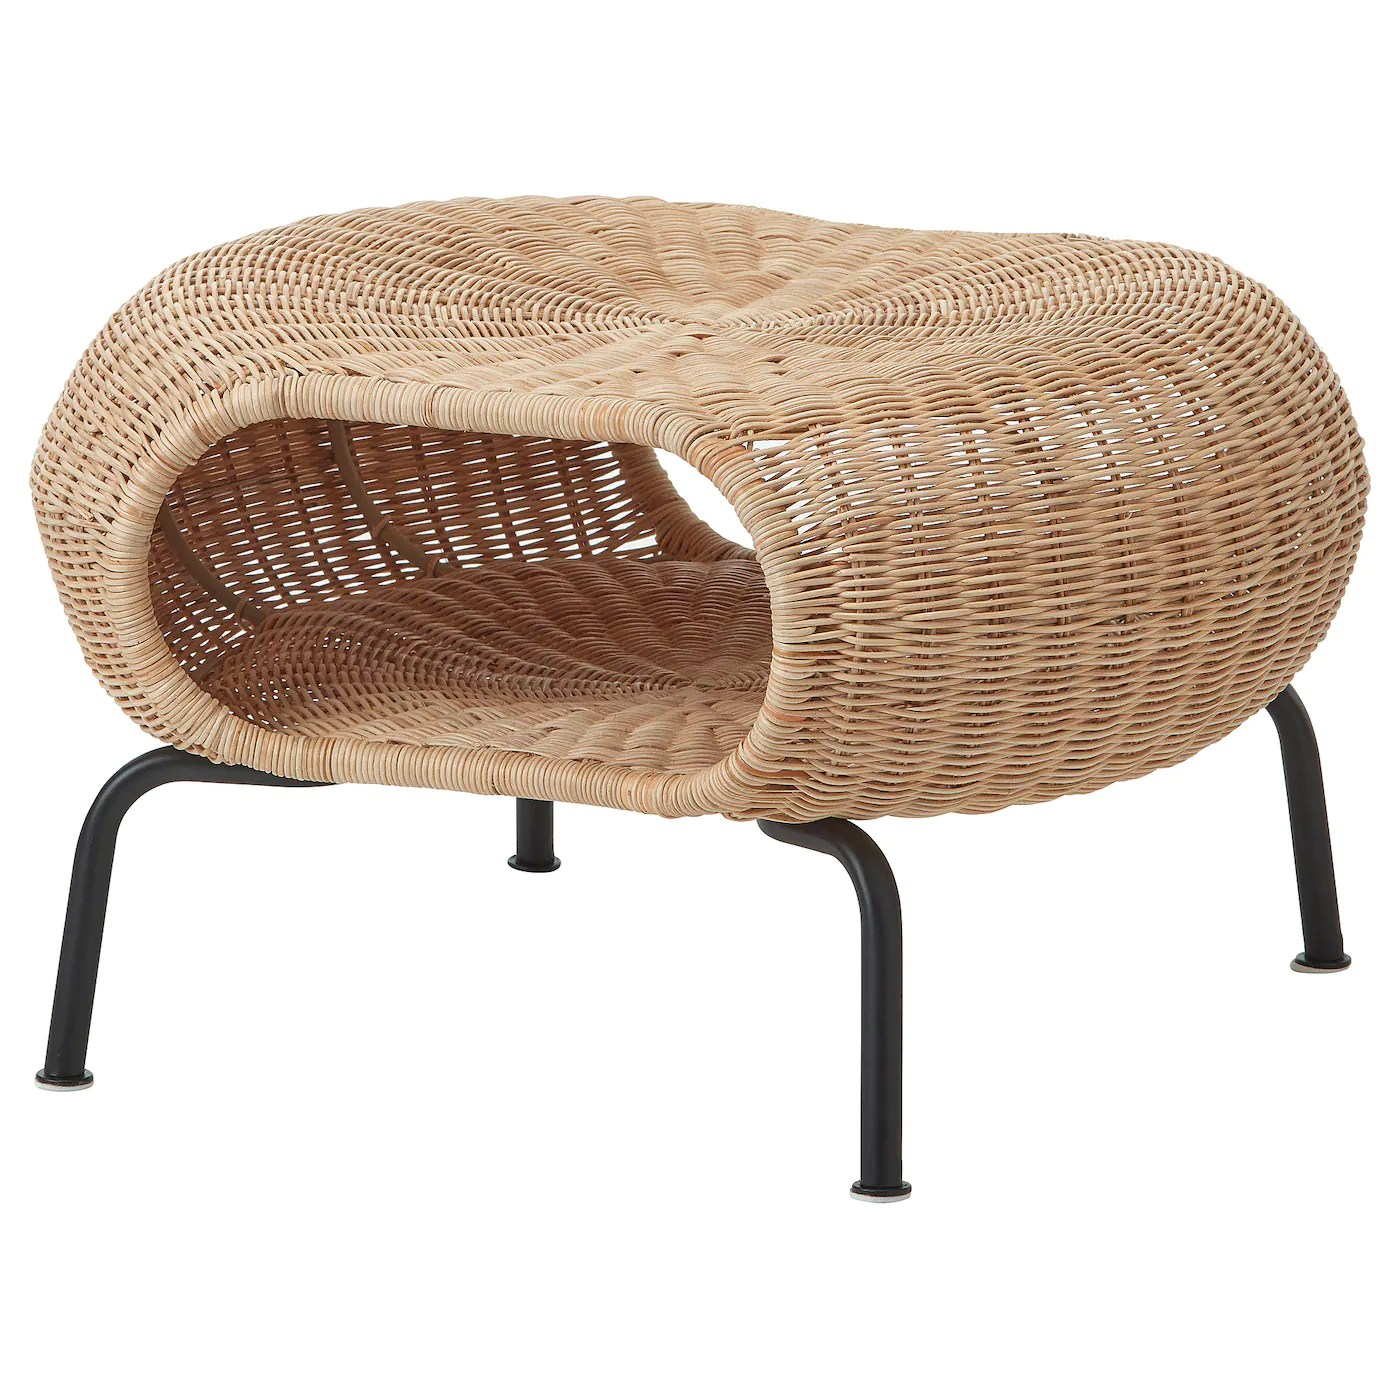 Rattan Ikea Gamlehult Footstool With Storage Rattan Anthracite